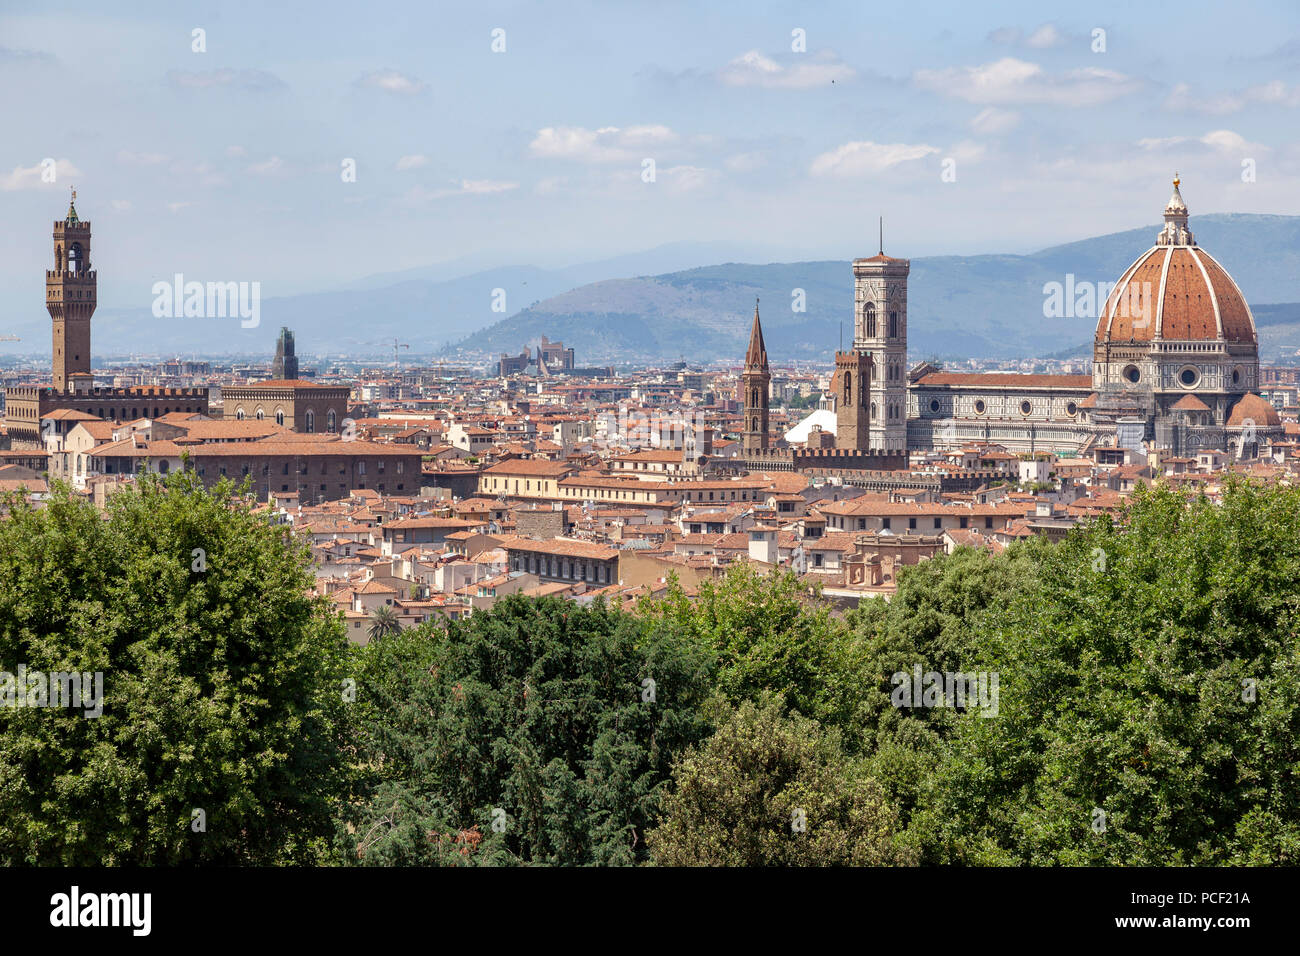 A view of Florence taken from the vantage point of  the MichelAngelo square and focusing from left to right on: the Palazzo Vecchio and the Duomo. - Stock Image